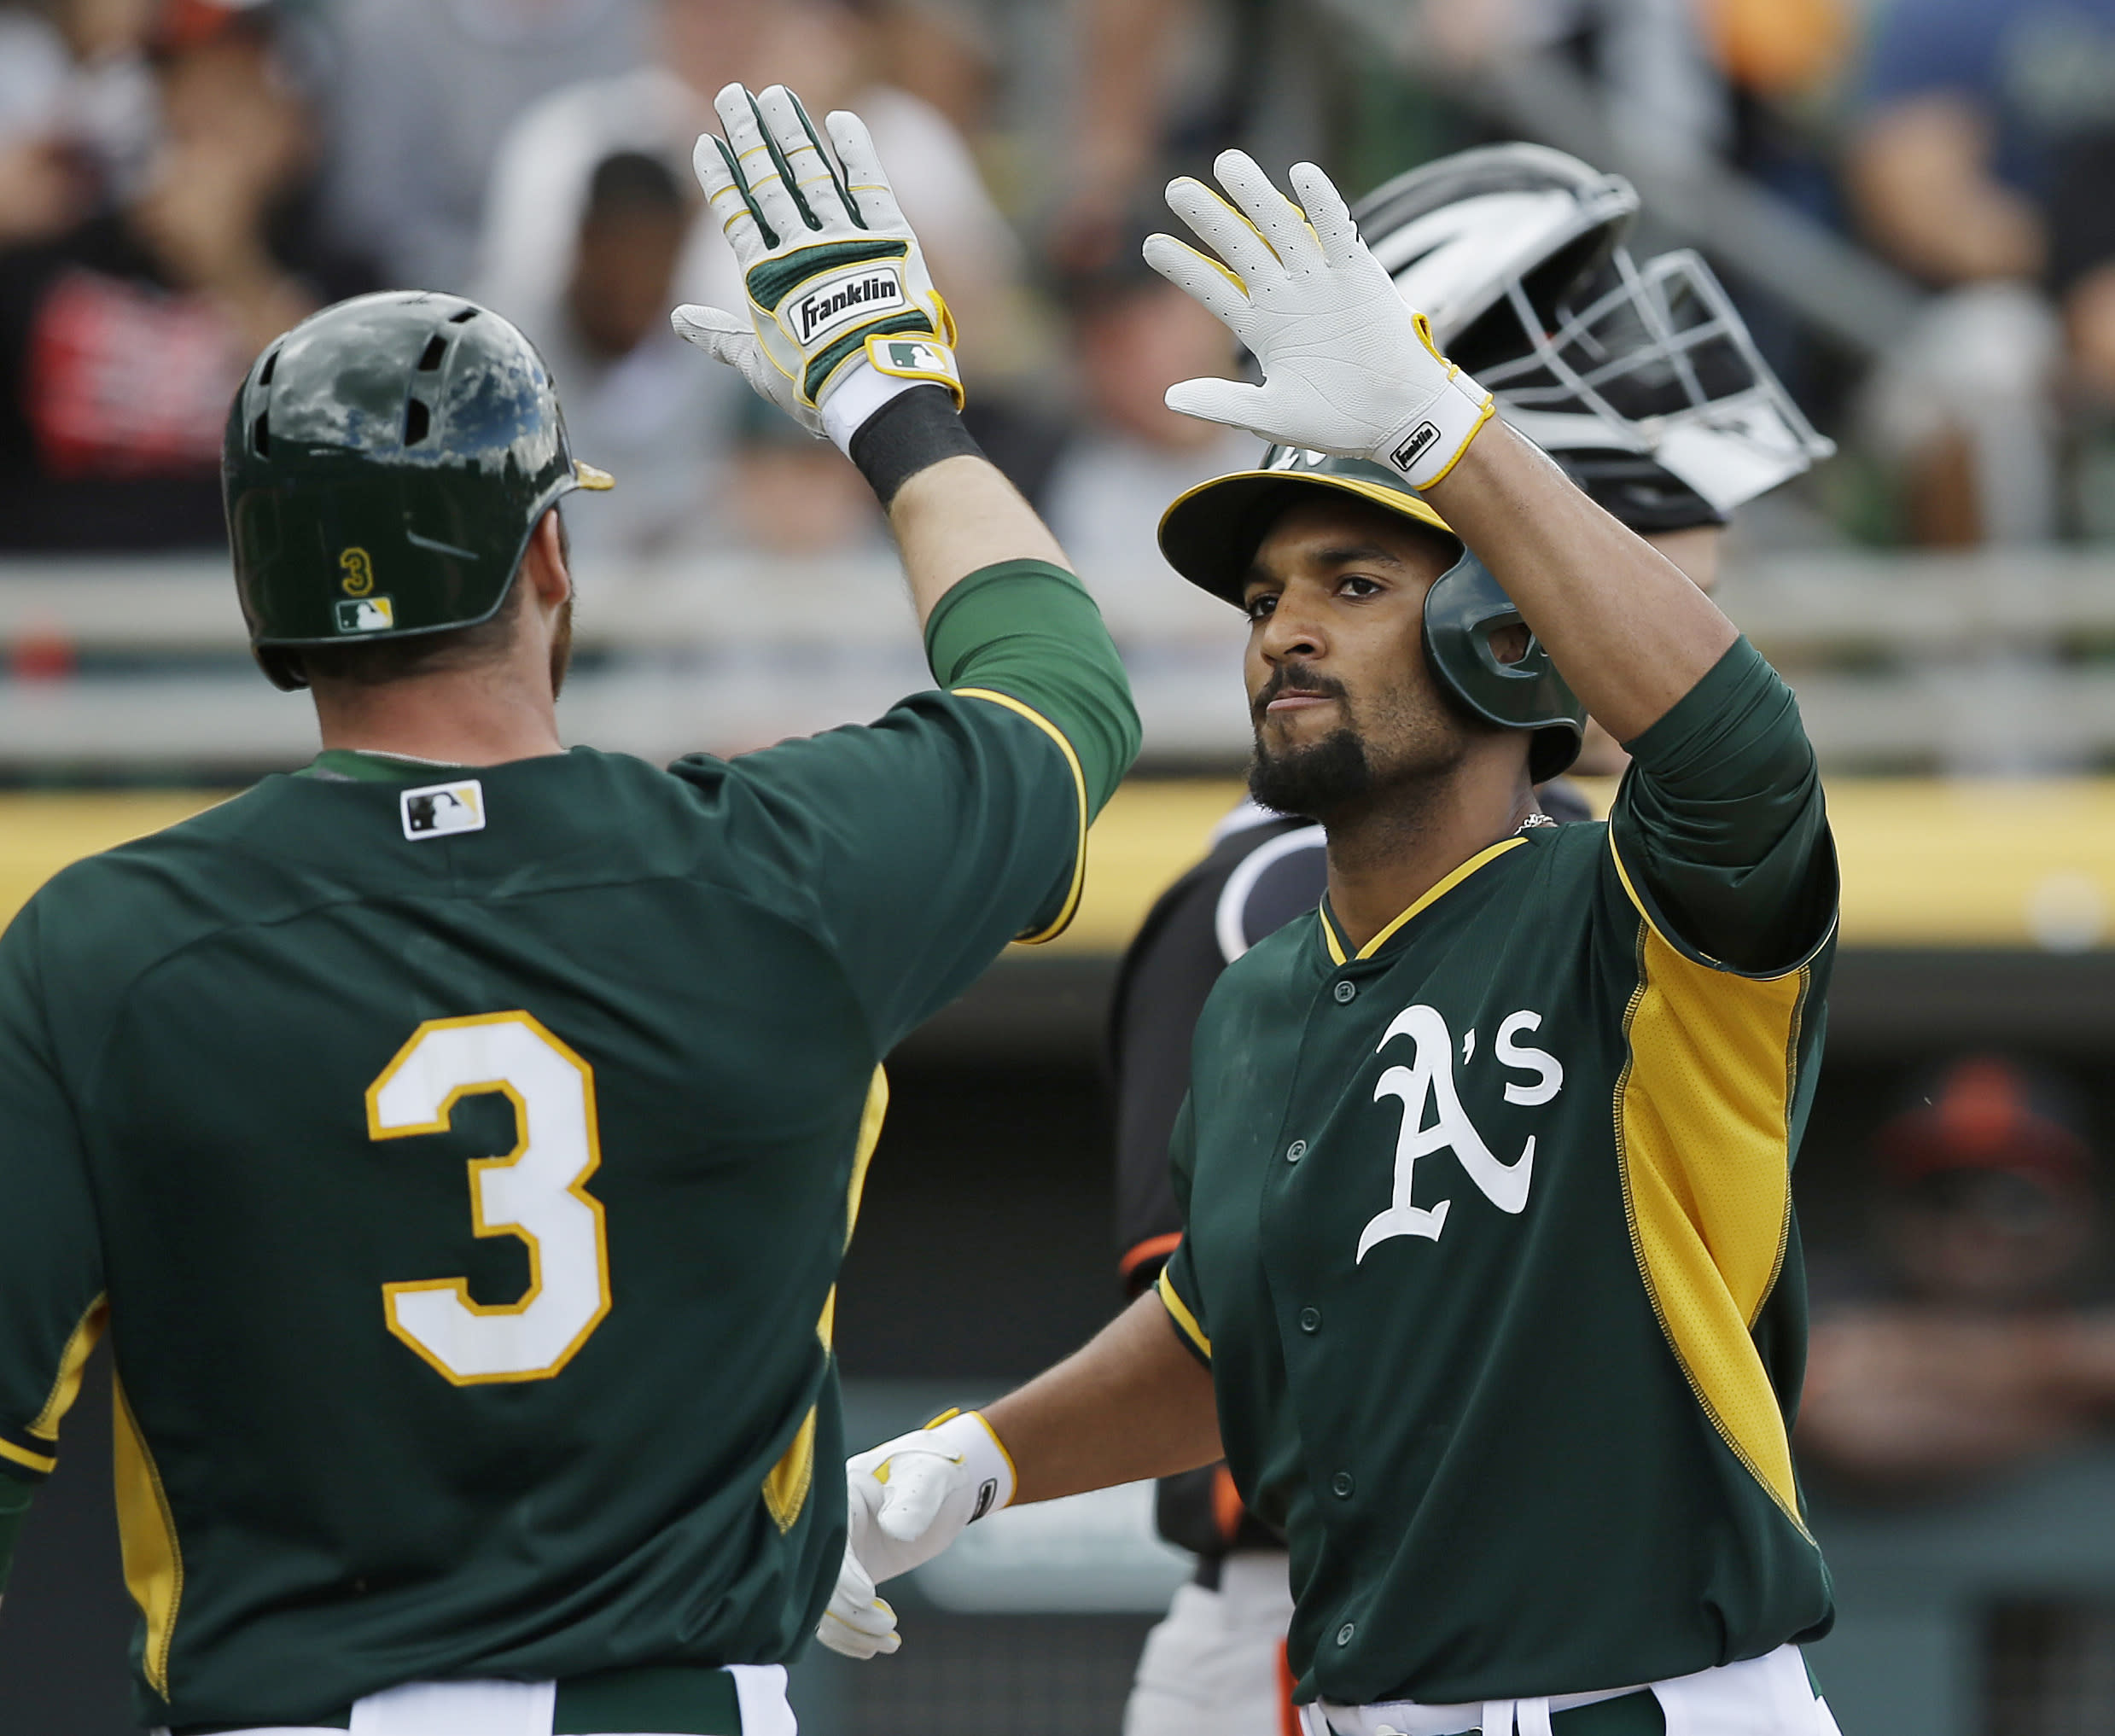 Marcus Semien has five hits, seven RBIs though two spring games